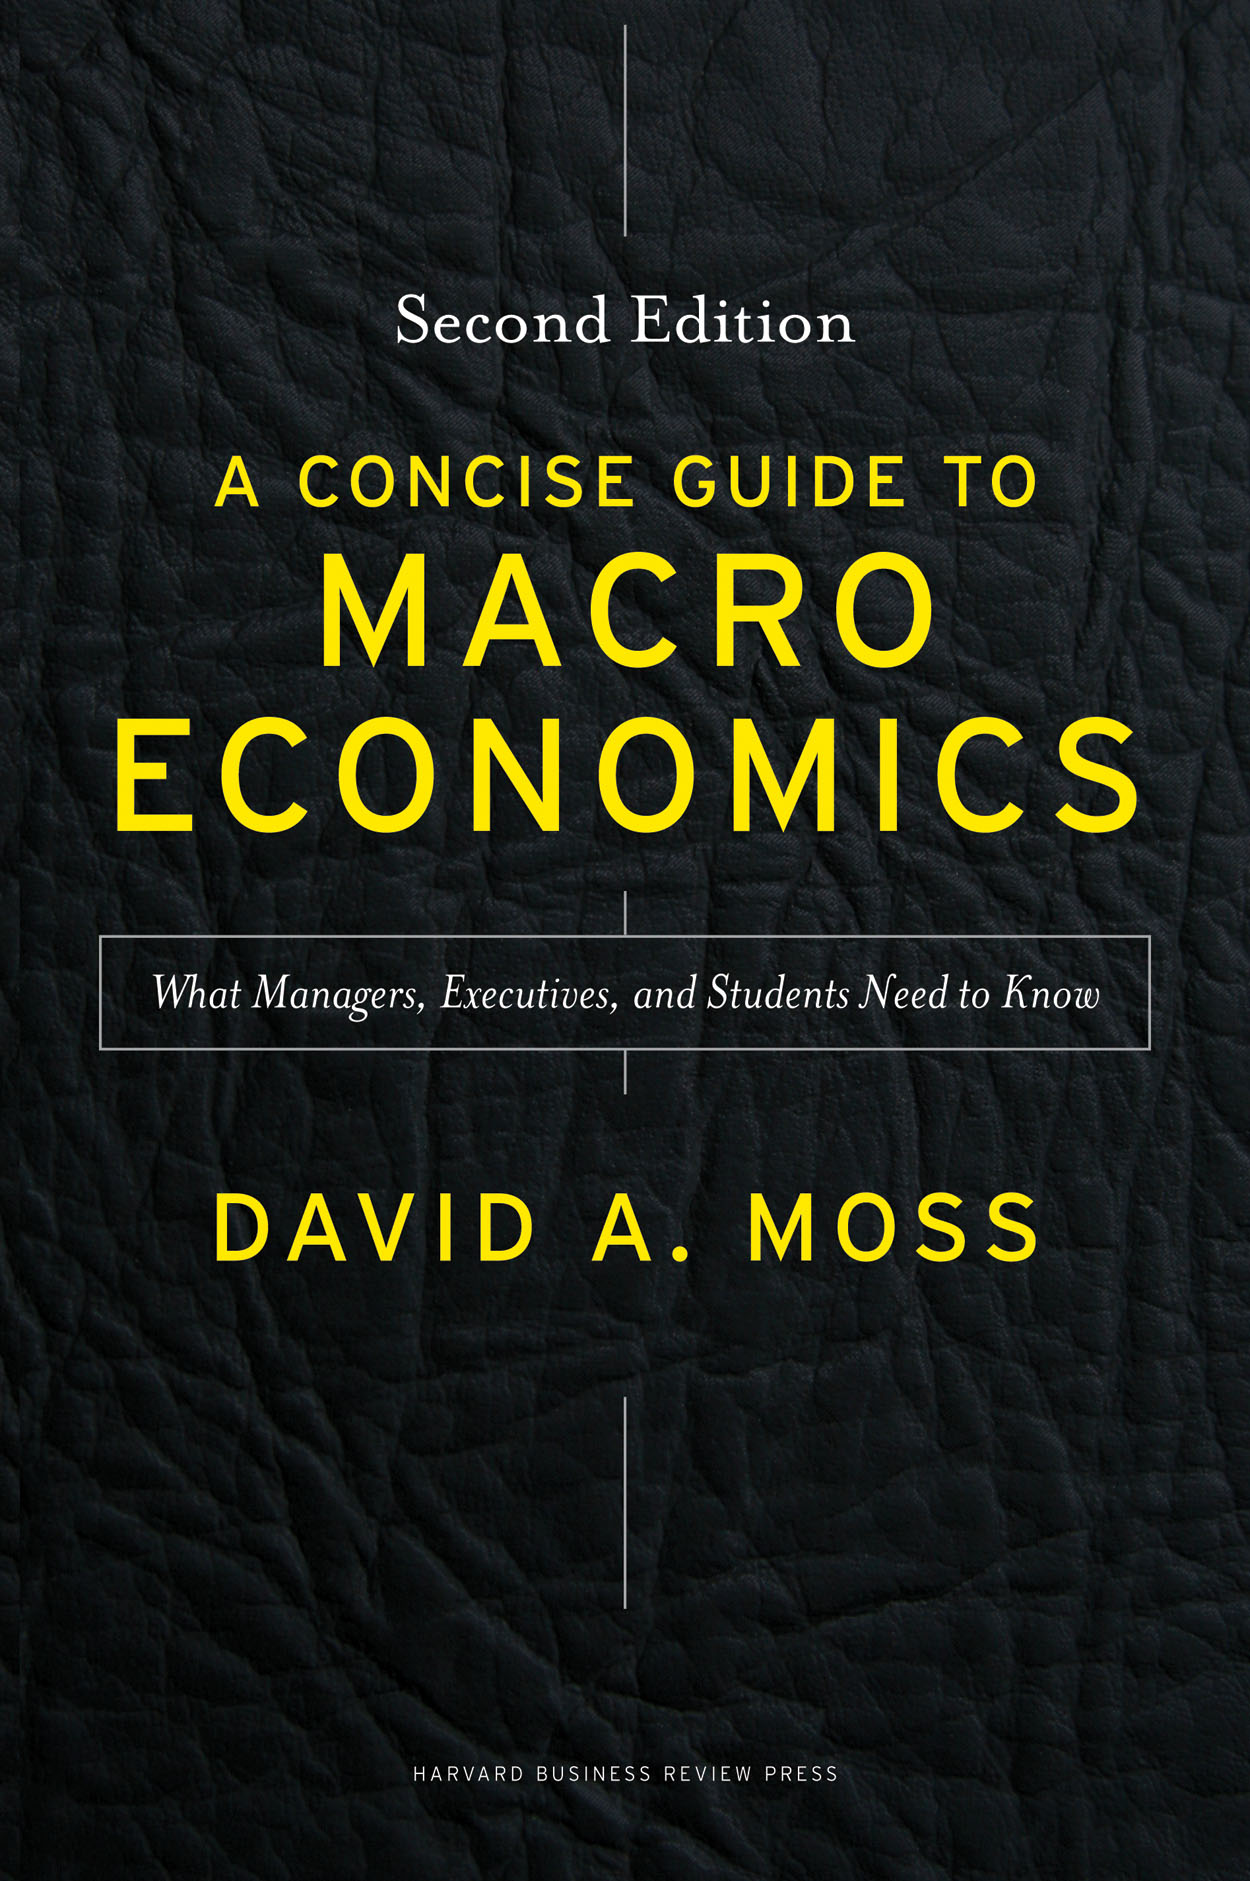 Download Ebook A Concise Guide to Macroeconomics, Second Edition by David Moss Pdf